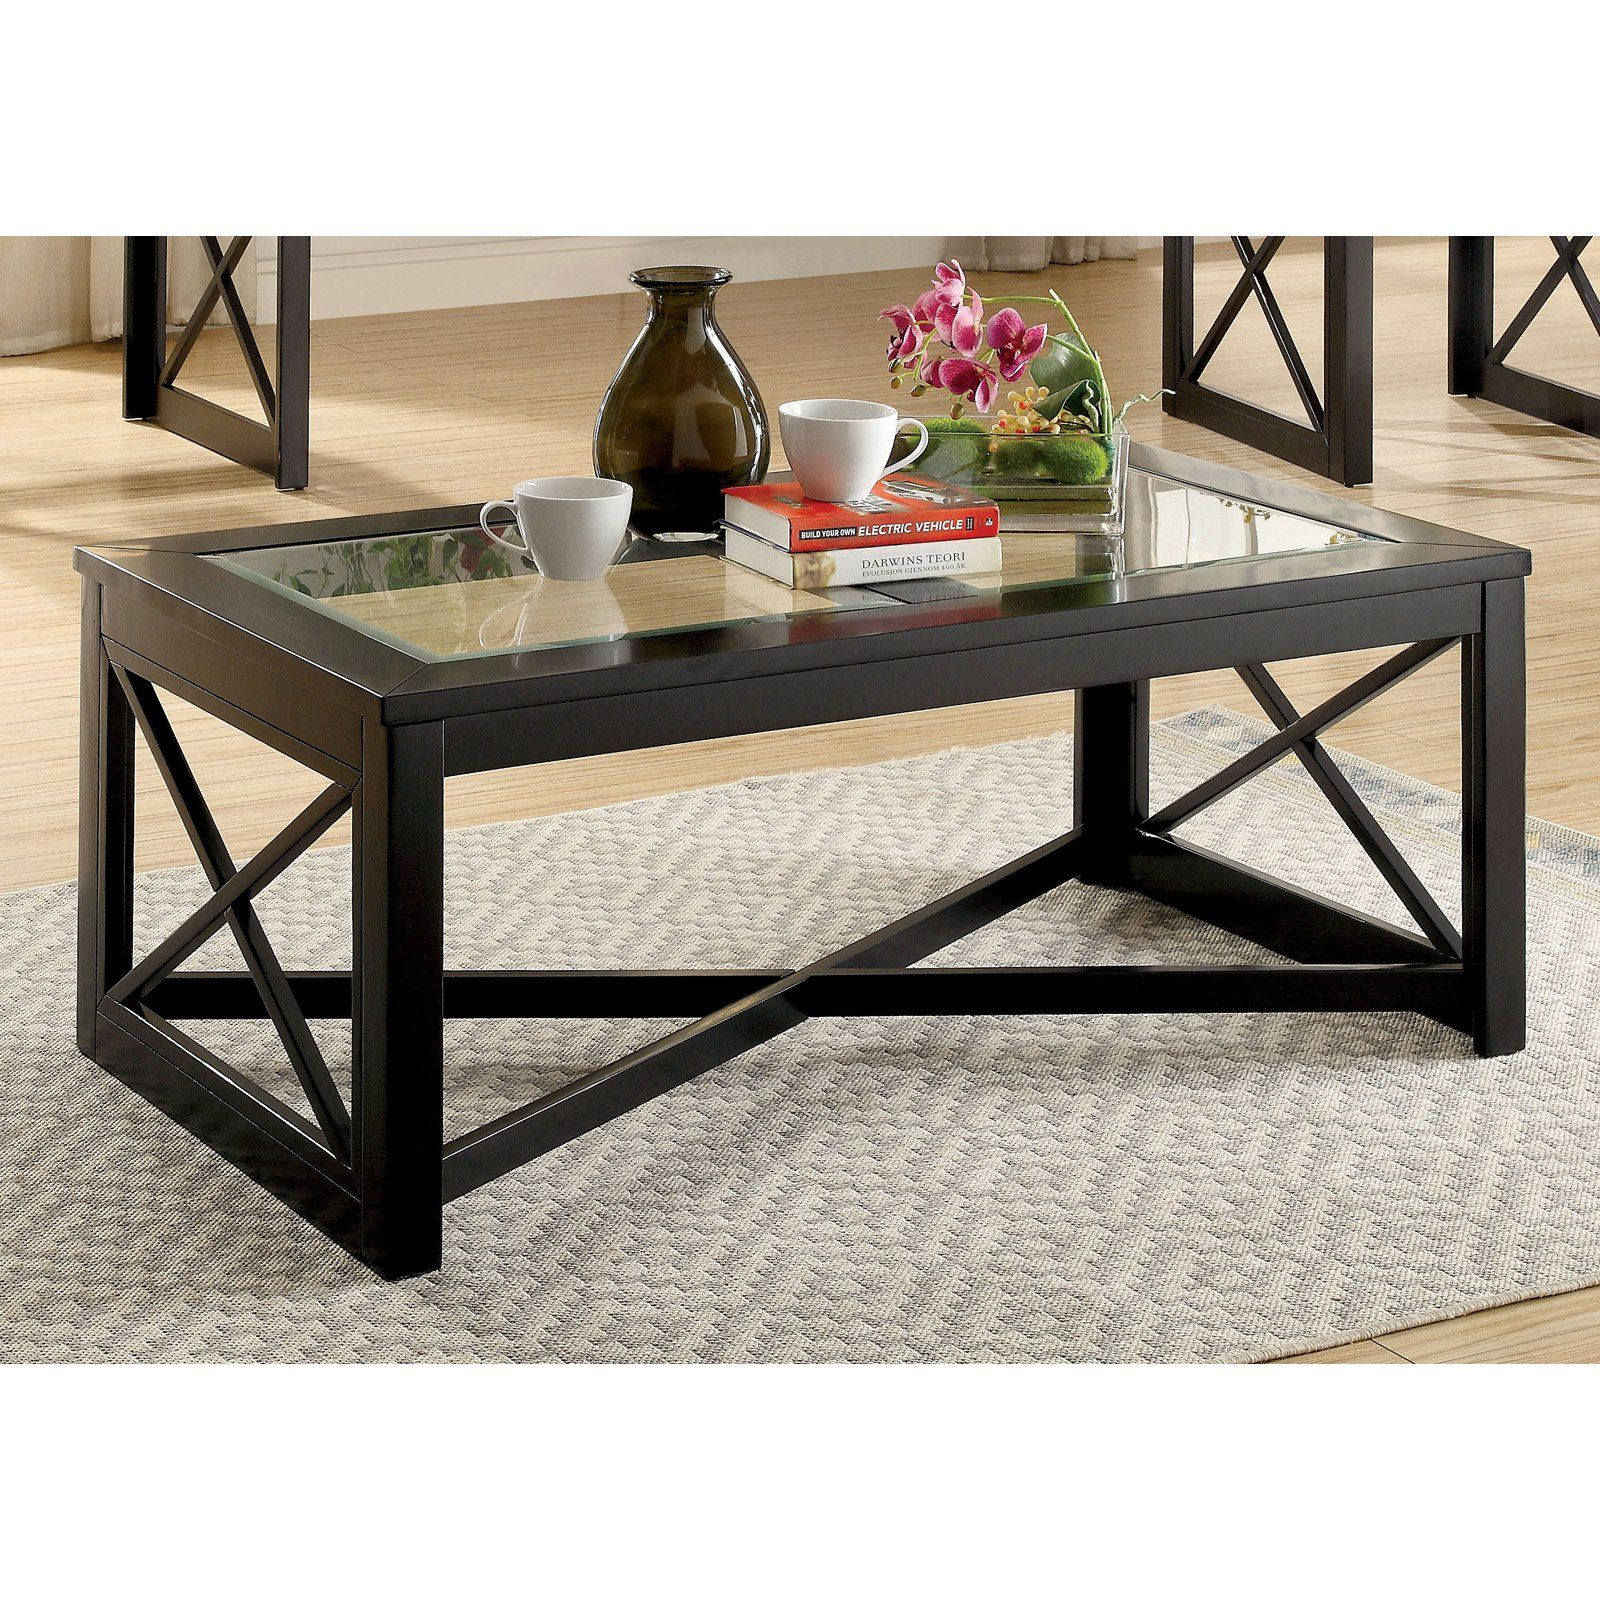 Furniture Of America Issa Contemporary Style Glass Top Coffee Table Coffee Table Solid Wood Coffee Table Coffee Table Wood [ 1600 x 1600 Pixel ]